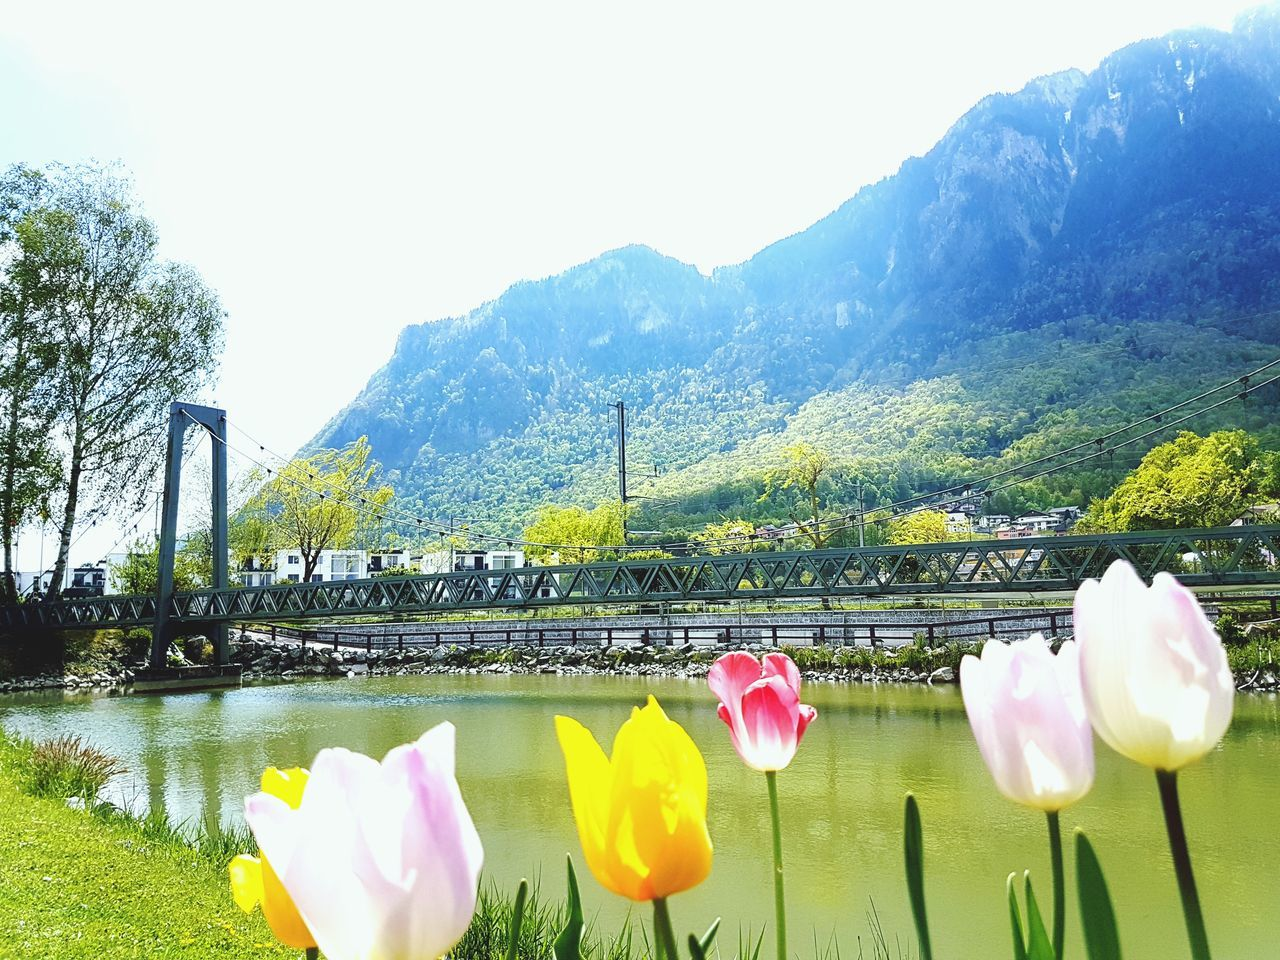 Outdoors Scenics Nature Water Flowers Flower Head Railway Bridge Tulips Tulip Beauty In Nature No People Clear Sky Lake With Mountains Switzerland Lake Geneva Region The Great Outdoors - 2017 EyeEm Awards